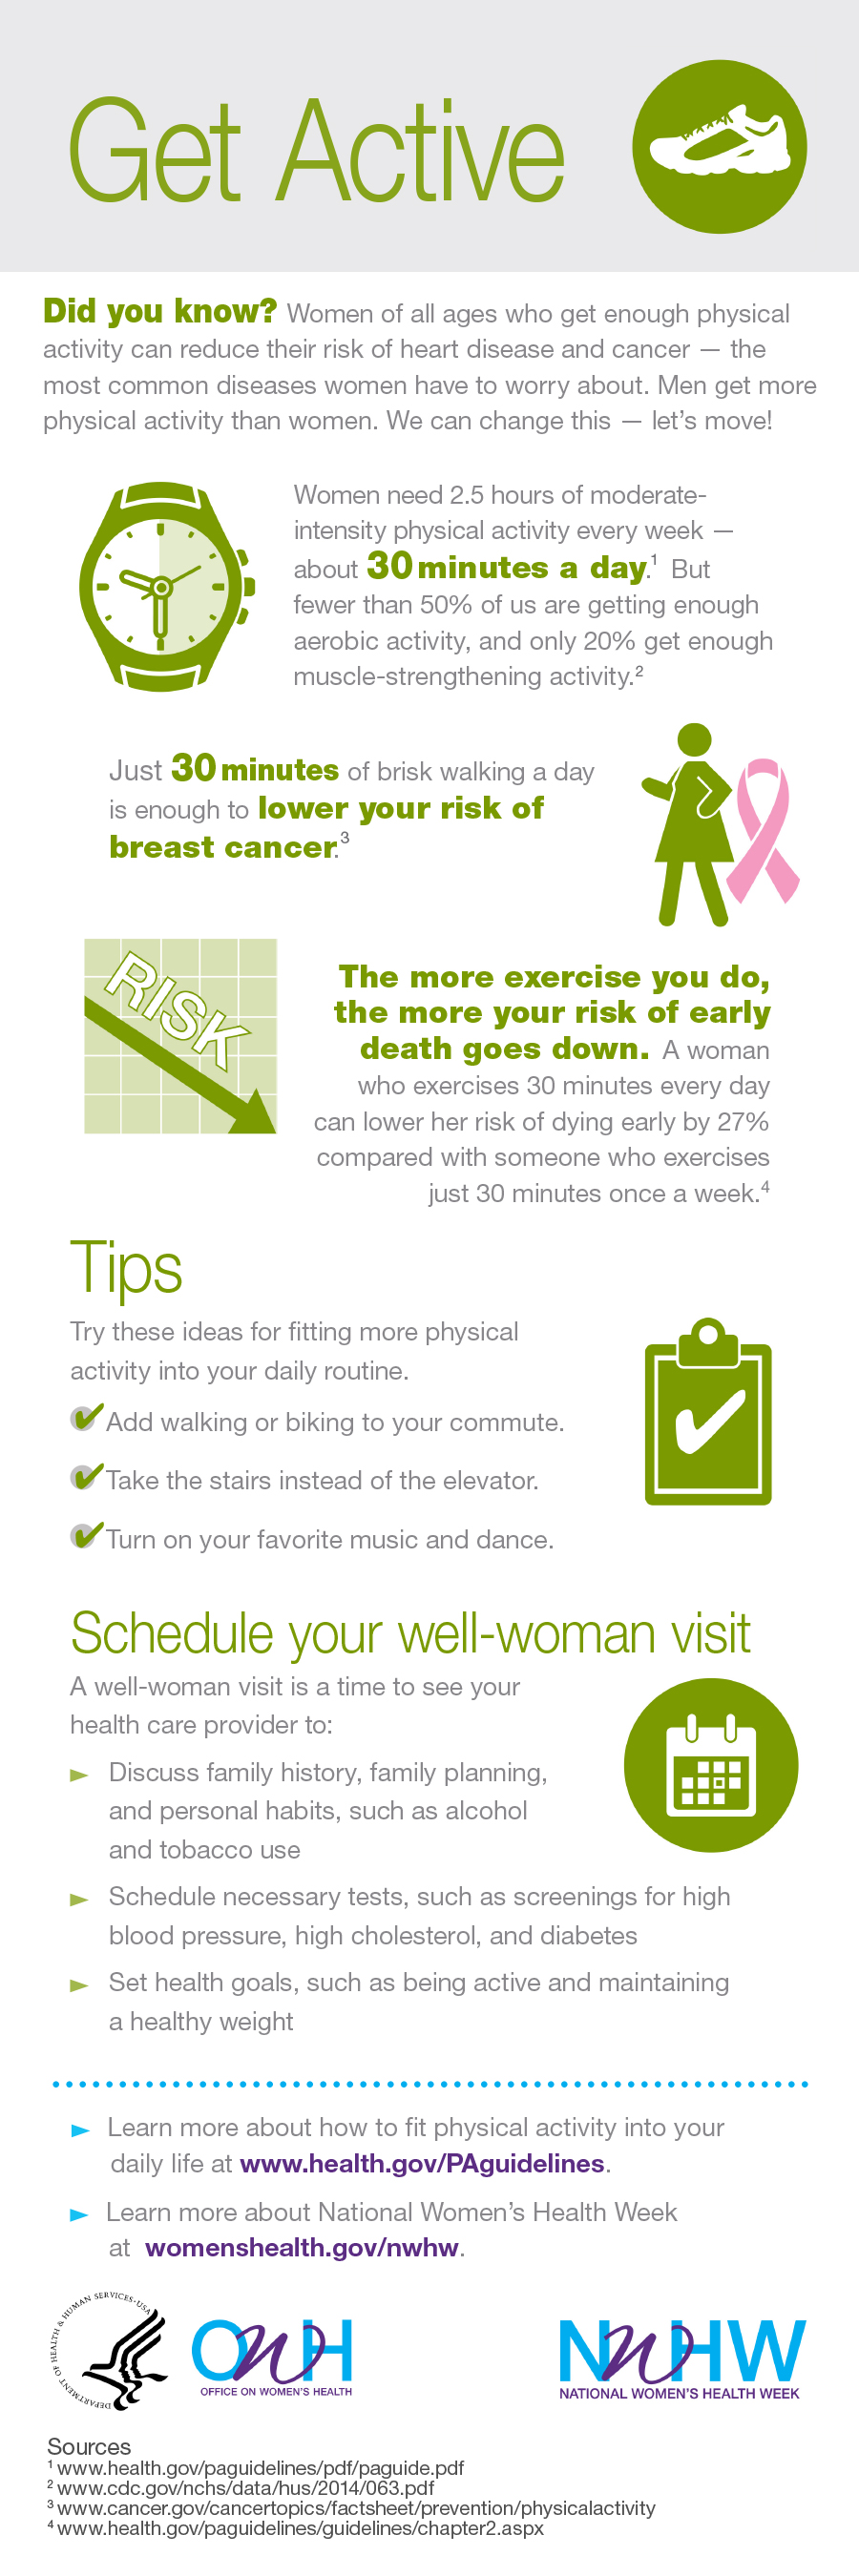 nwhw_infographic-get-active_0.jpg